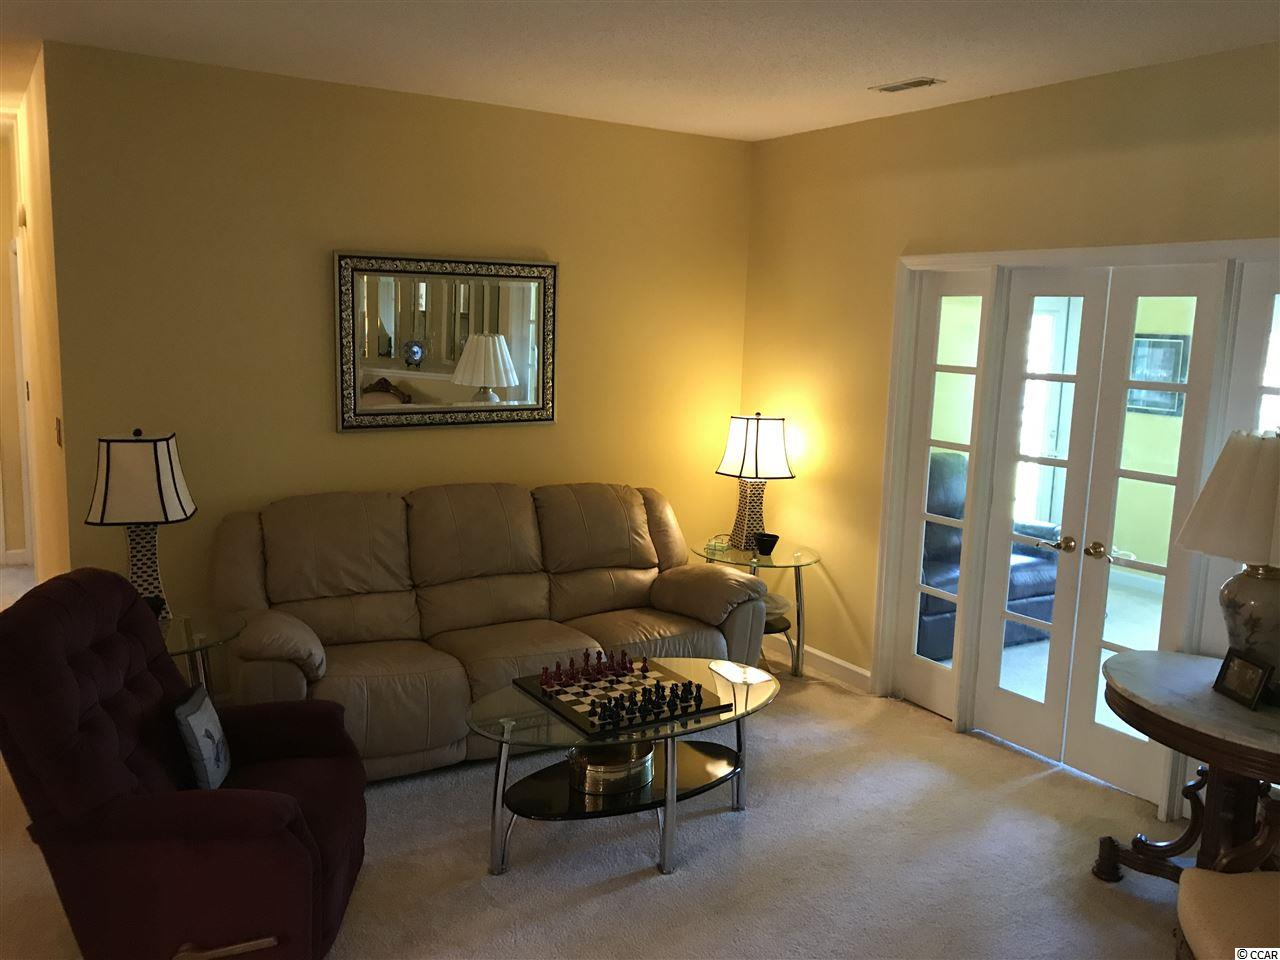 WILLOW GREENS condo for sale in Conway, SC